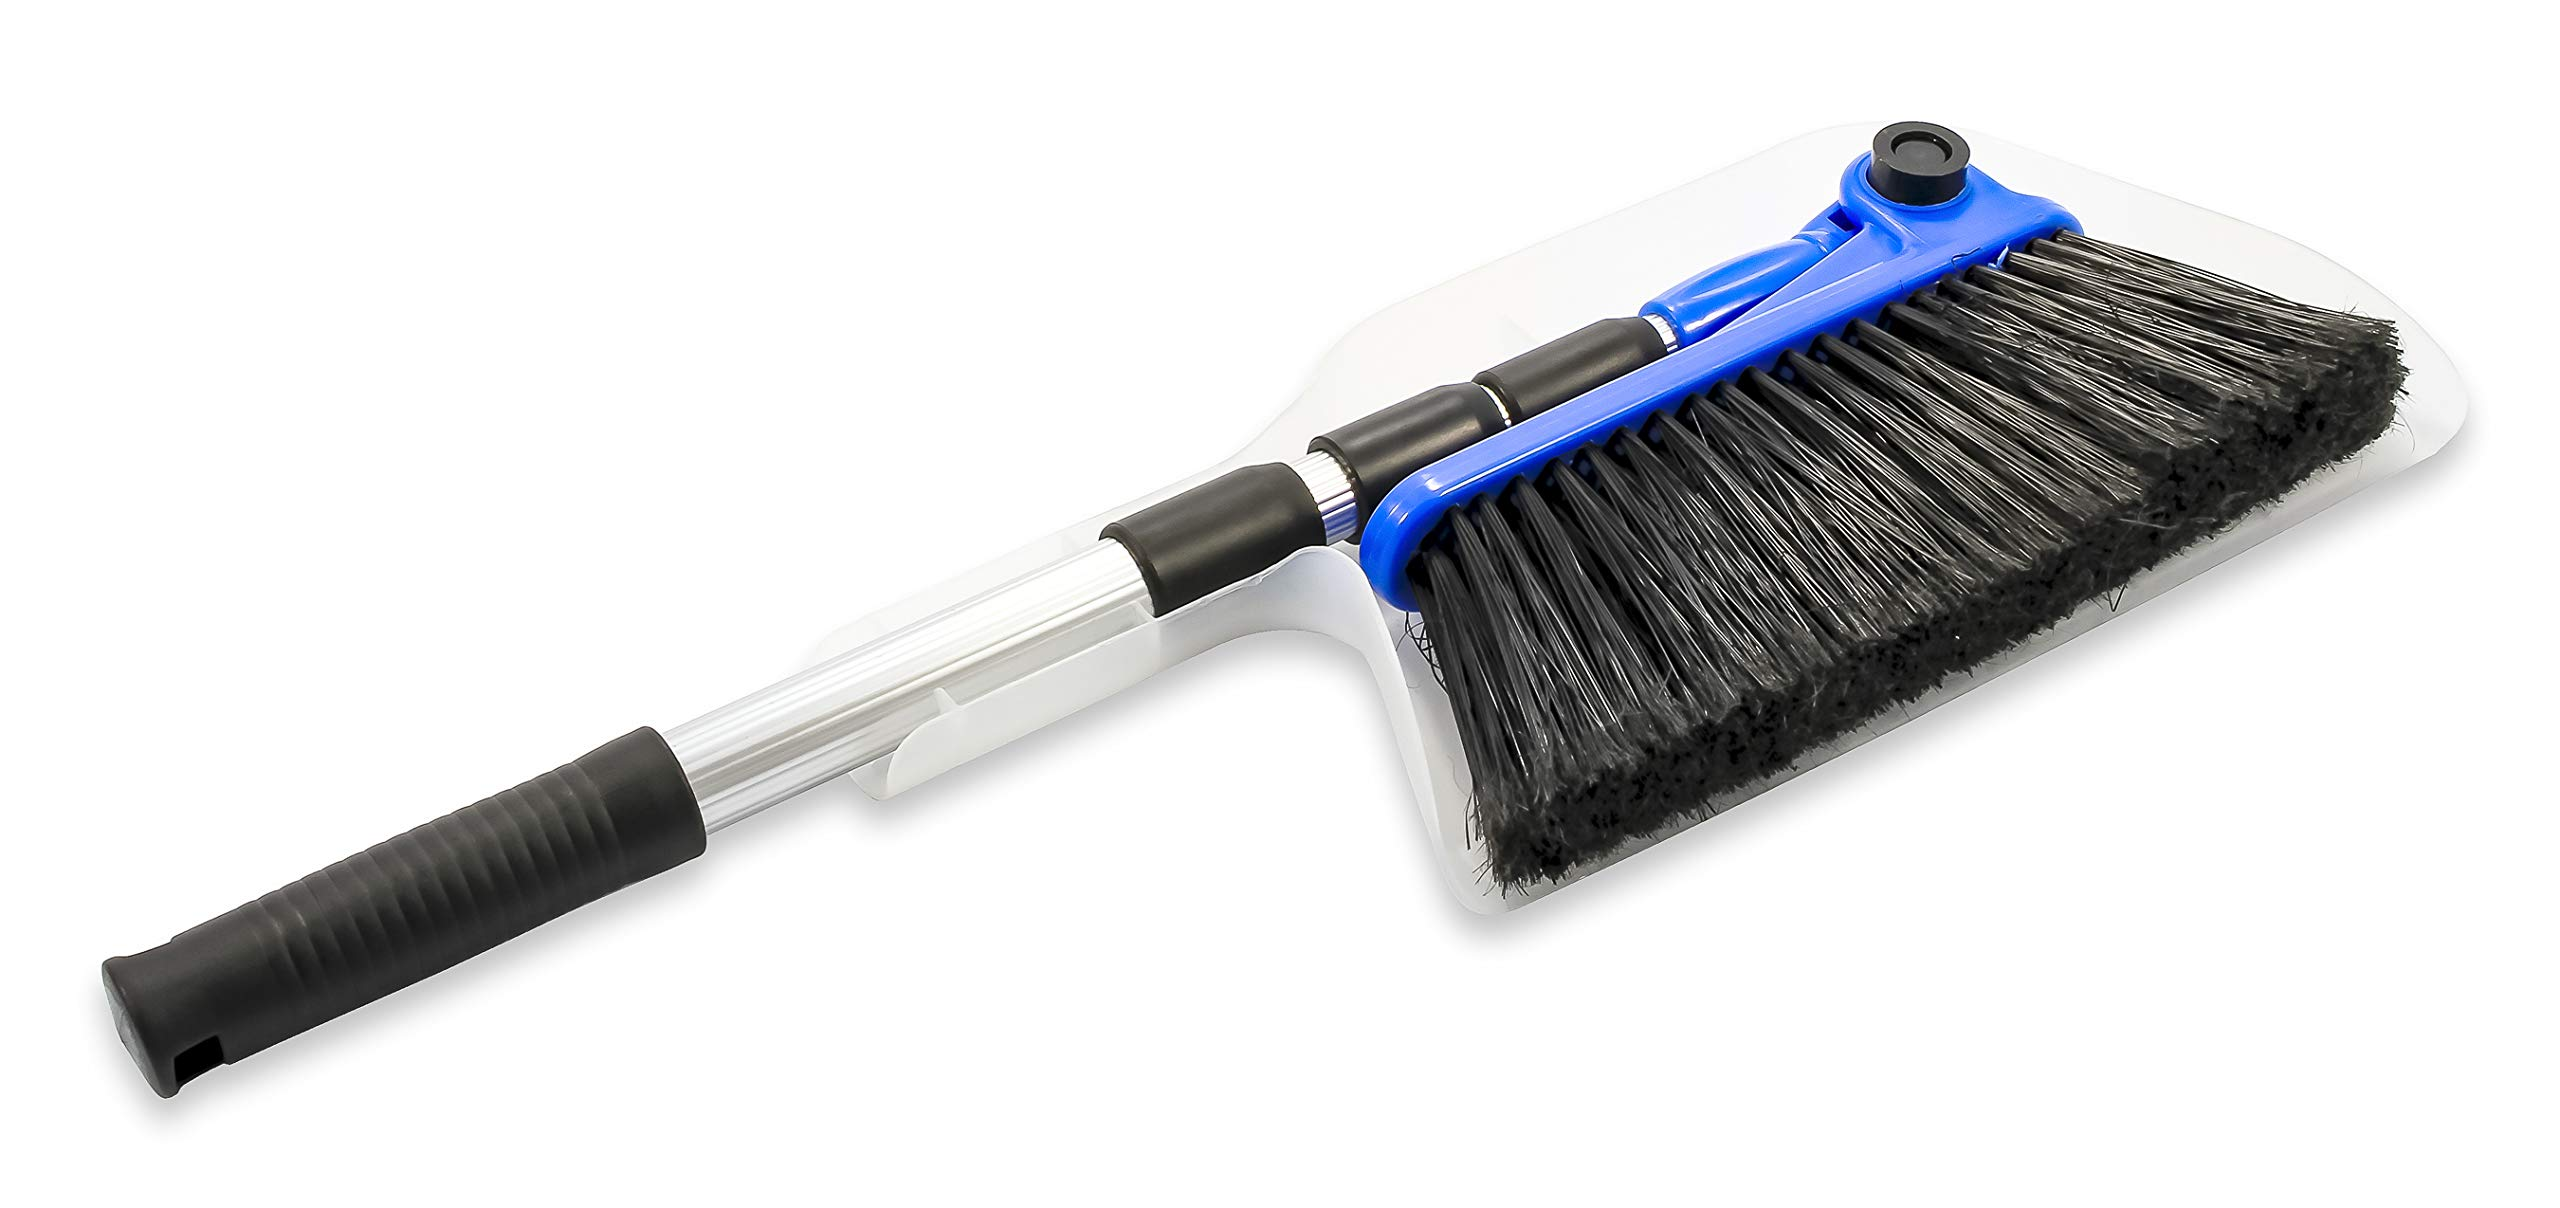 """Camco Mfg 43623 Adjustable RV Broom & Dustpan 2 Adjusts to different angles Dustpan clips onto broom handle for storage 52"""" long broom telescopes down to just 24"""" for compact storage"""